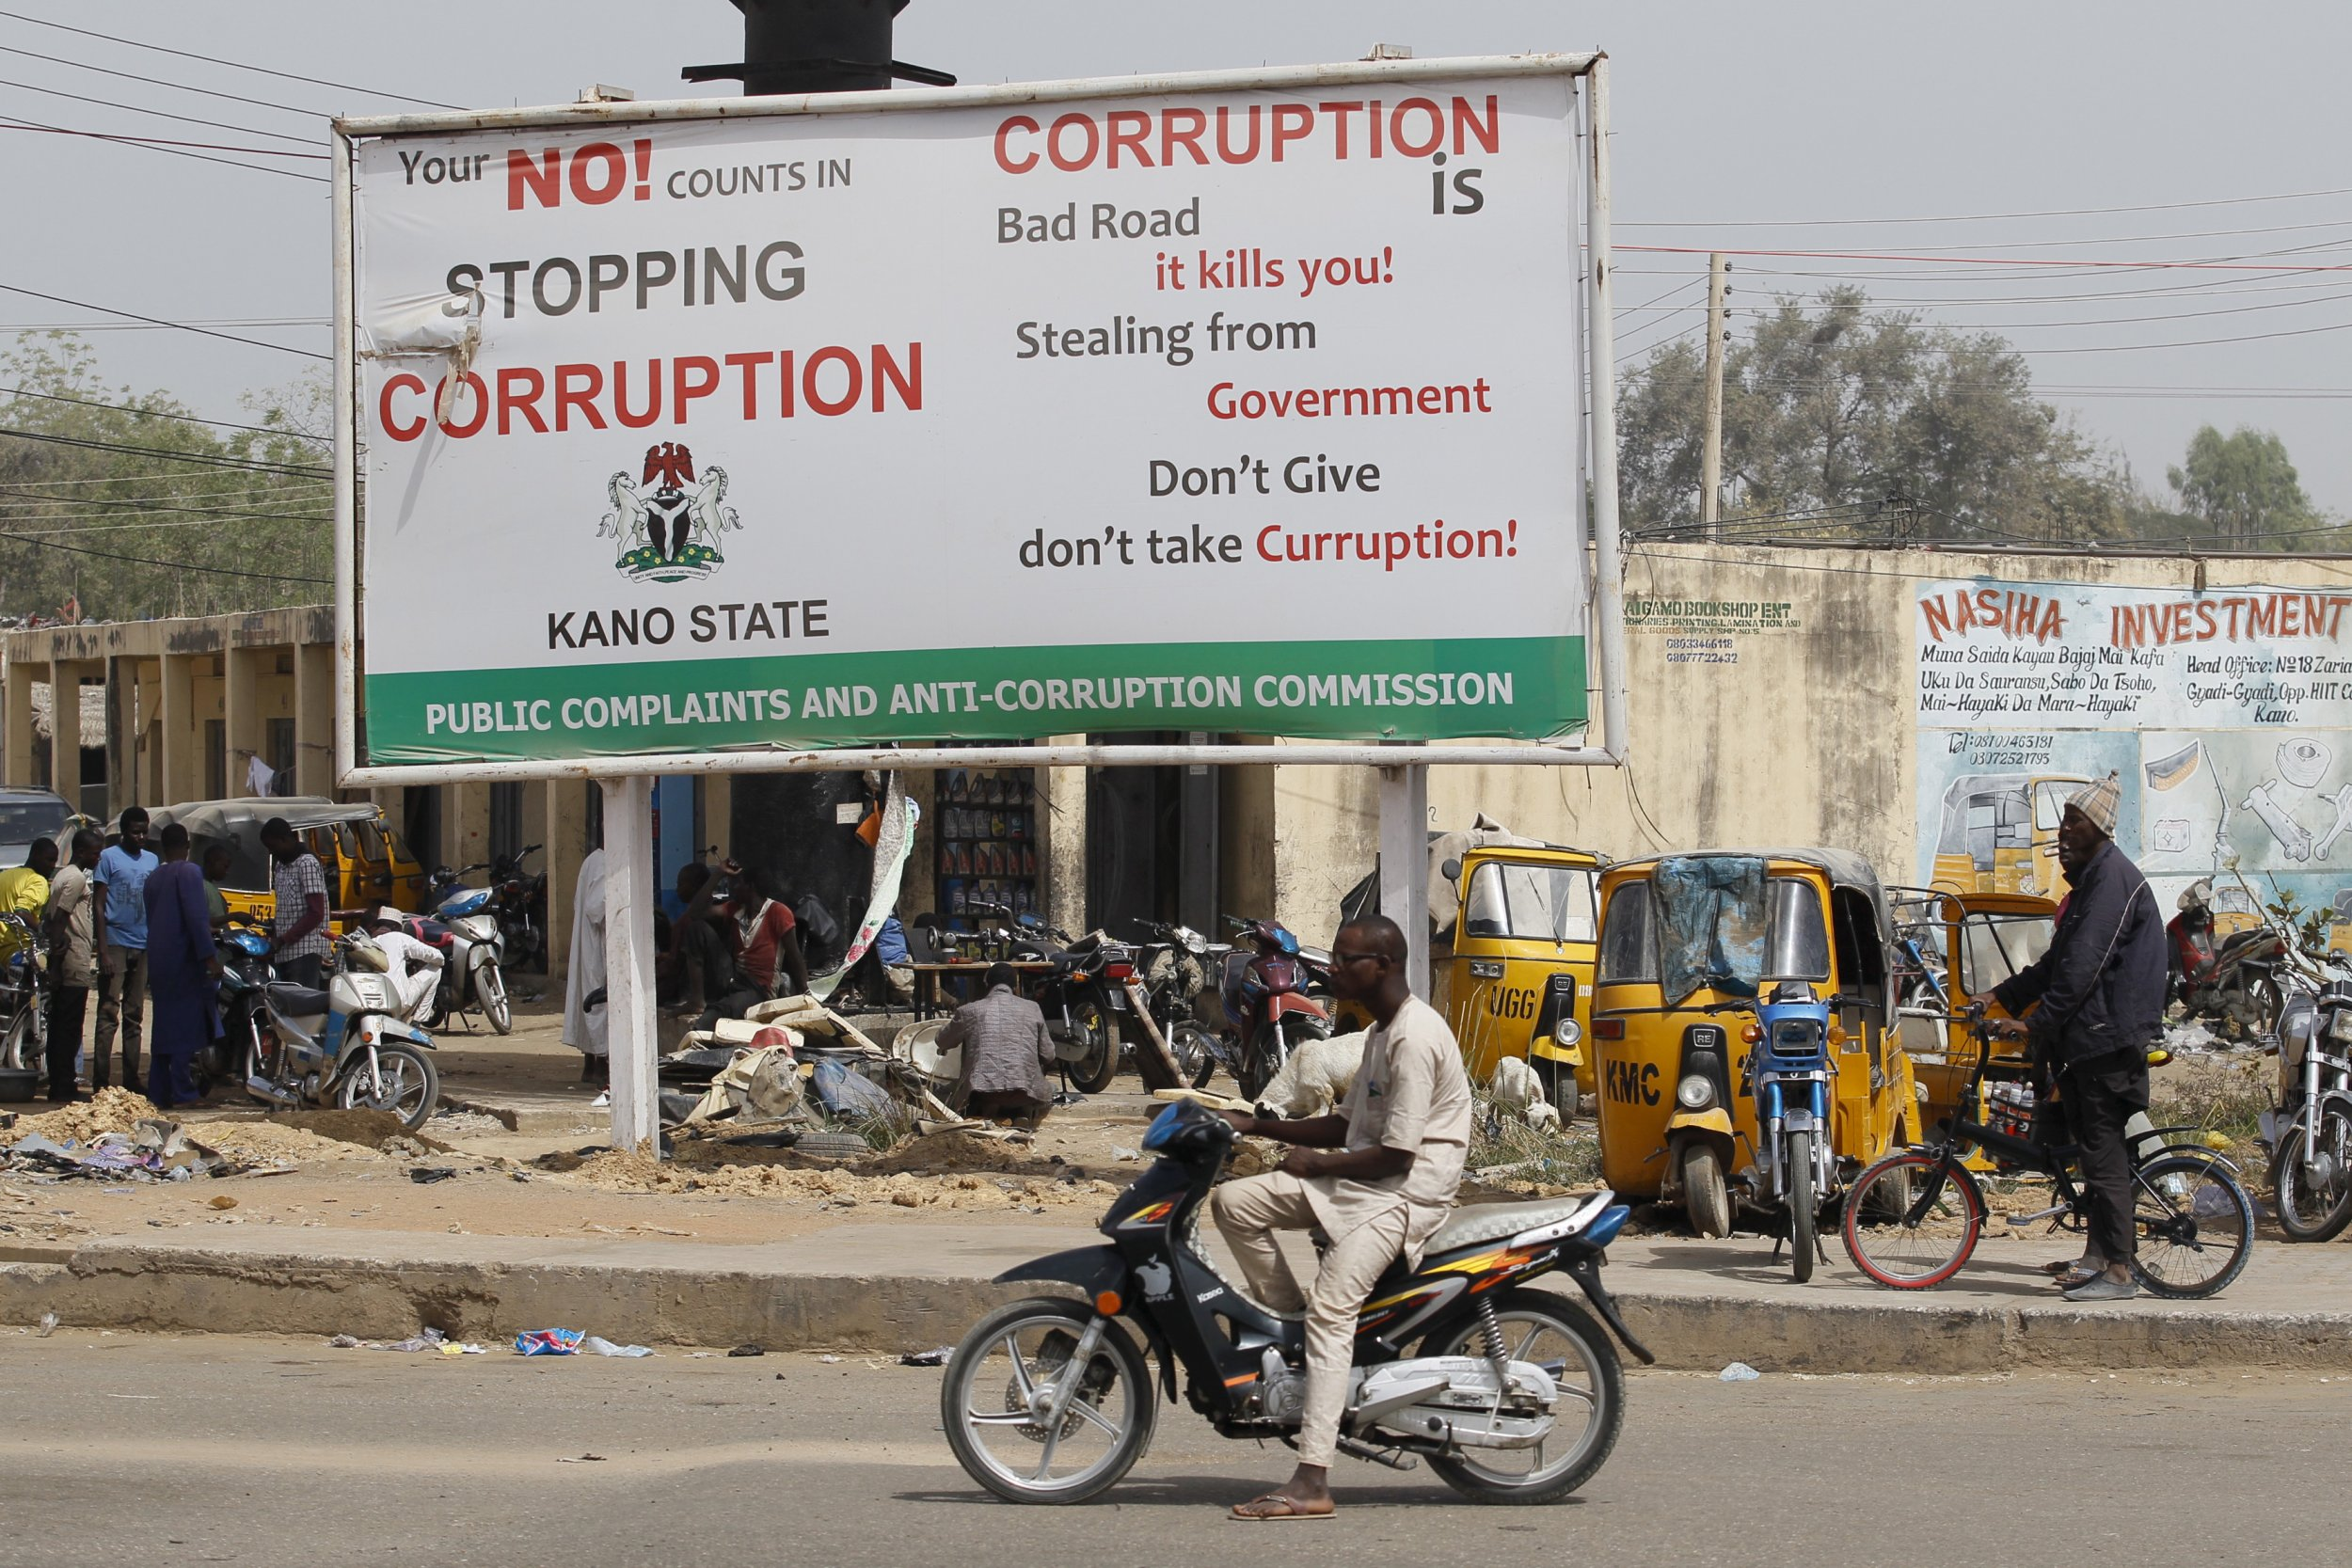 corruption in nigeria Read this essay on corruption in nigeria come browse our large digital warehouse of free sample essays get the knowledge you need in order to pass your classes and more only at.